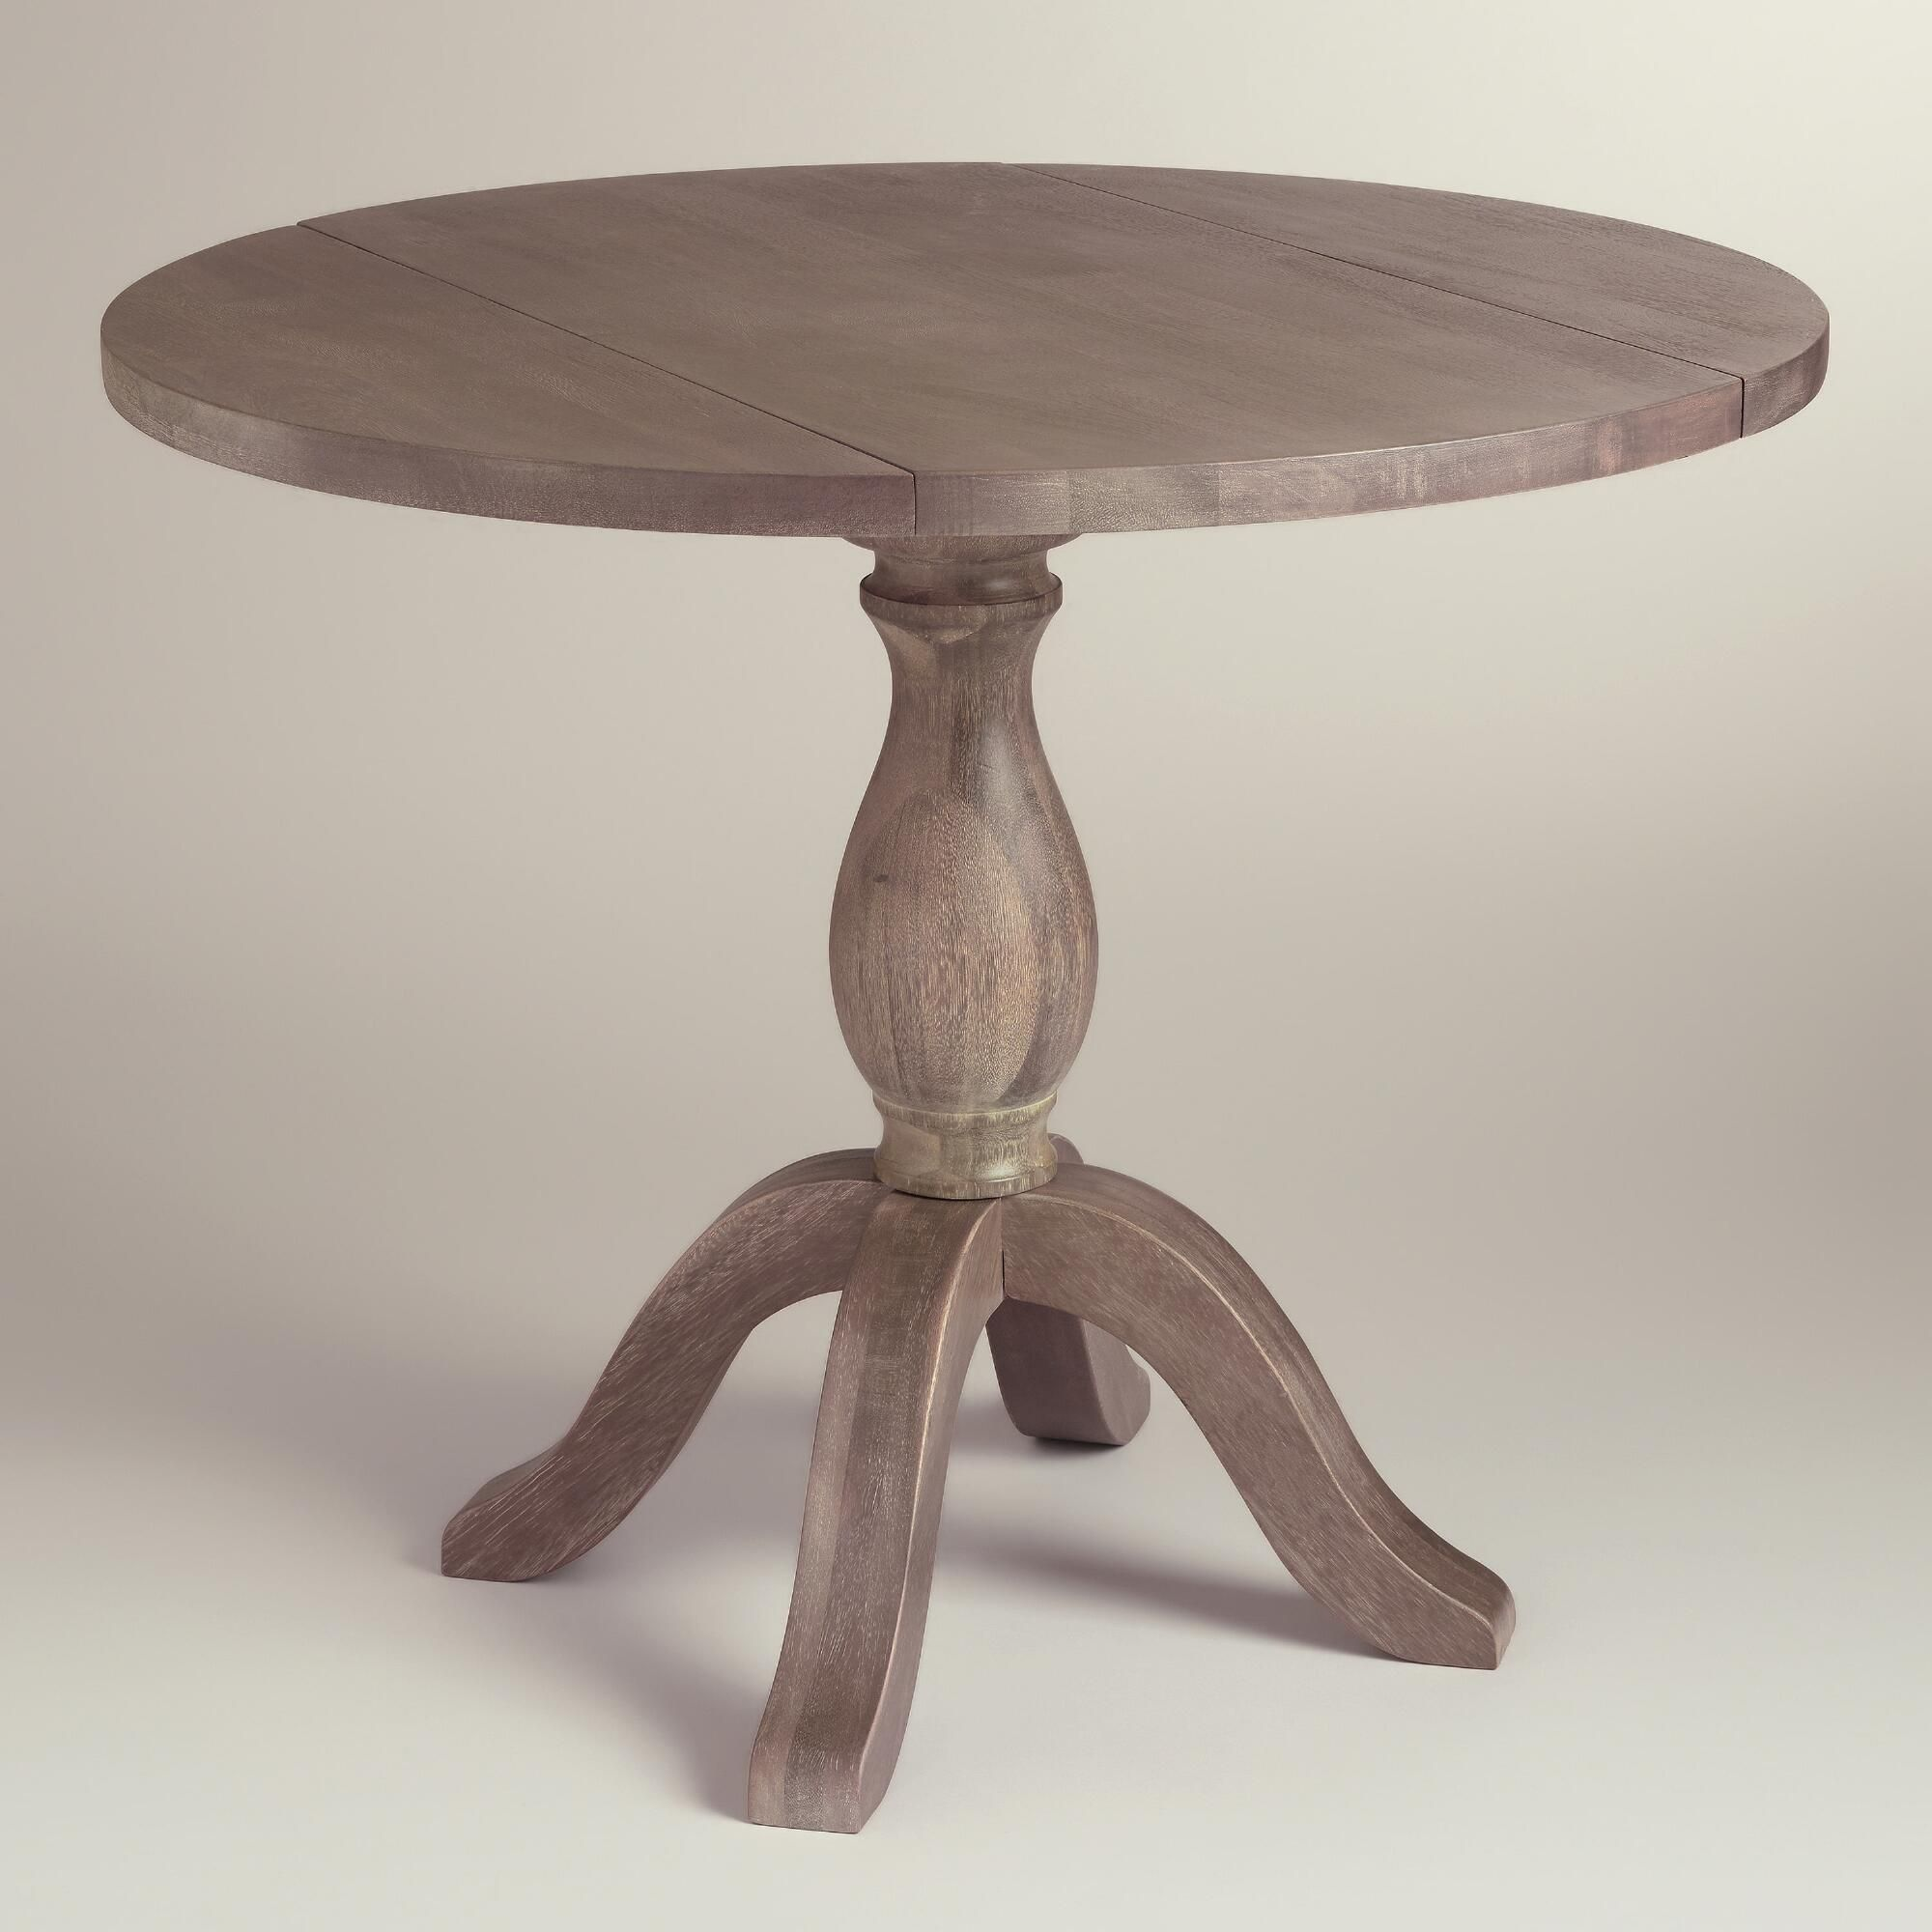 Round weathered gray wood jozy drop leaf table french for Small dining table with leaf